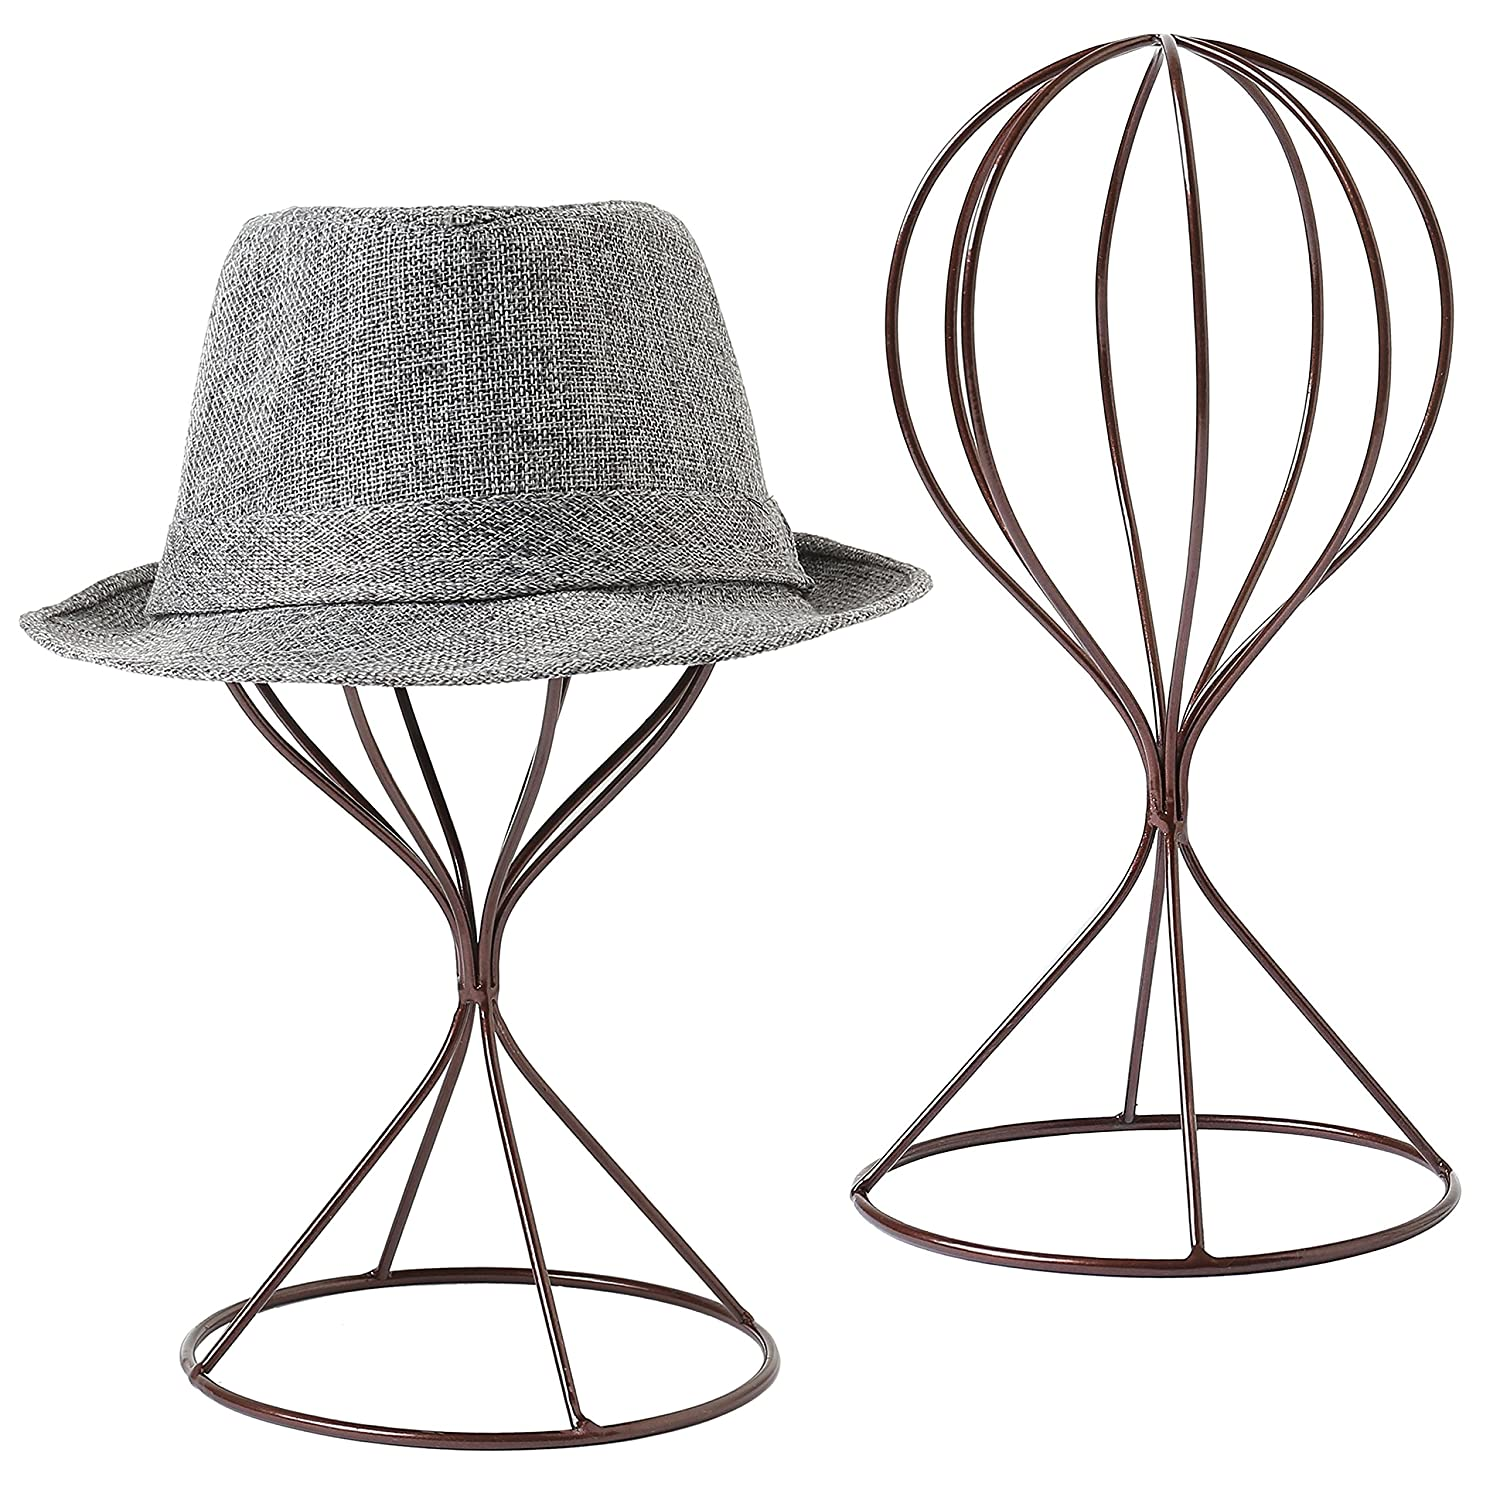 743dcd92e4845 A set of 2 freestanding hat holders with modern style and brown finishes.  Features a sturdy metal frame in the shape of a balloon for each stand.